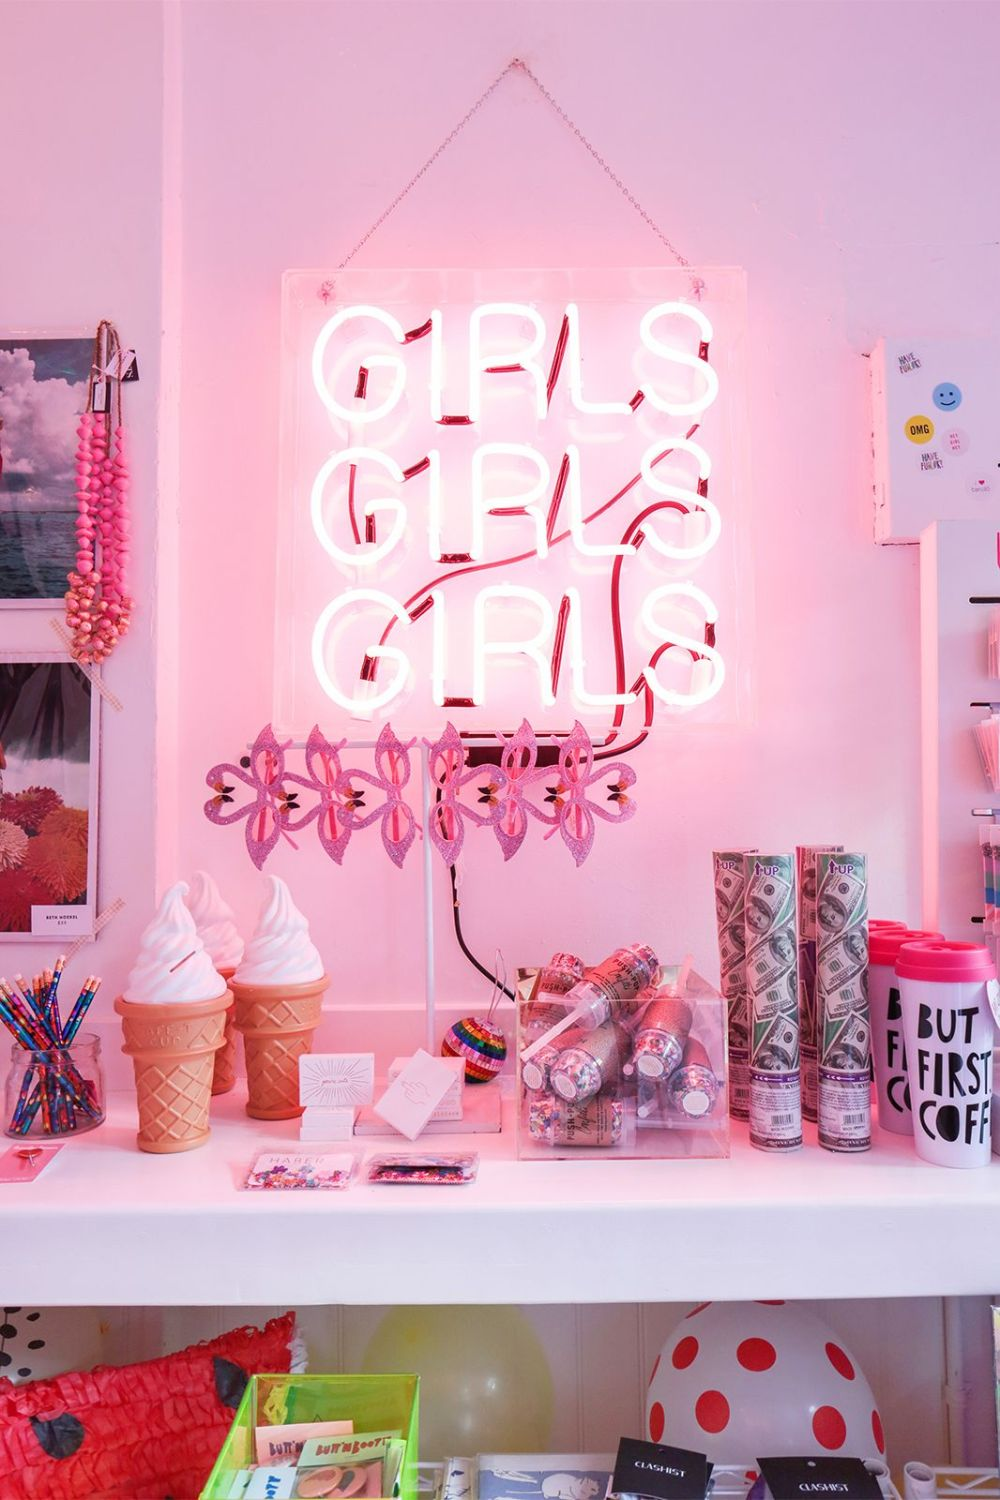 Girly-pink-neon-sign-